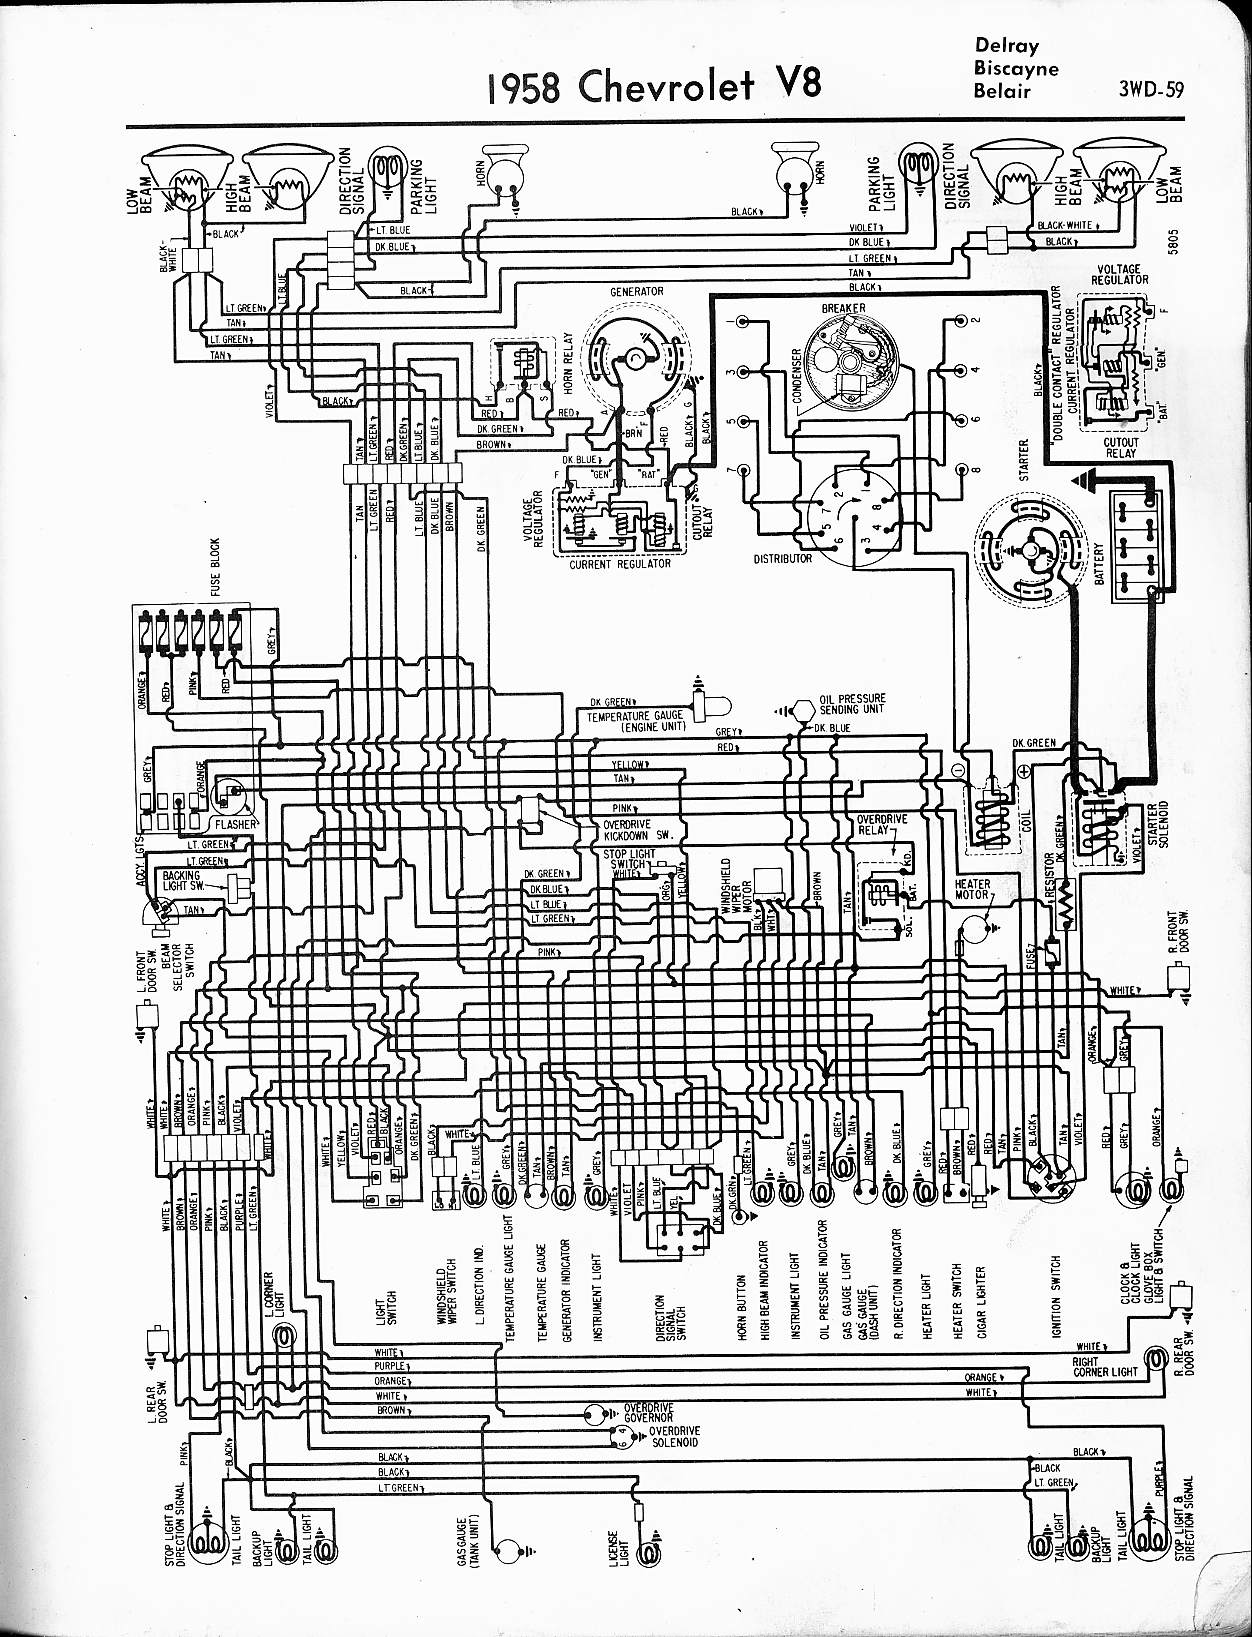 1959 Bel Air Wiring Diagram Opinions About Whirlpool Gas Range Sf265ltxs2 57 65 Chevy Diagrams Rh Oldcarmanualproject Com Chevrolet 1956